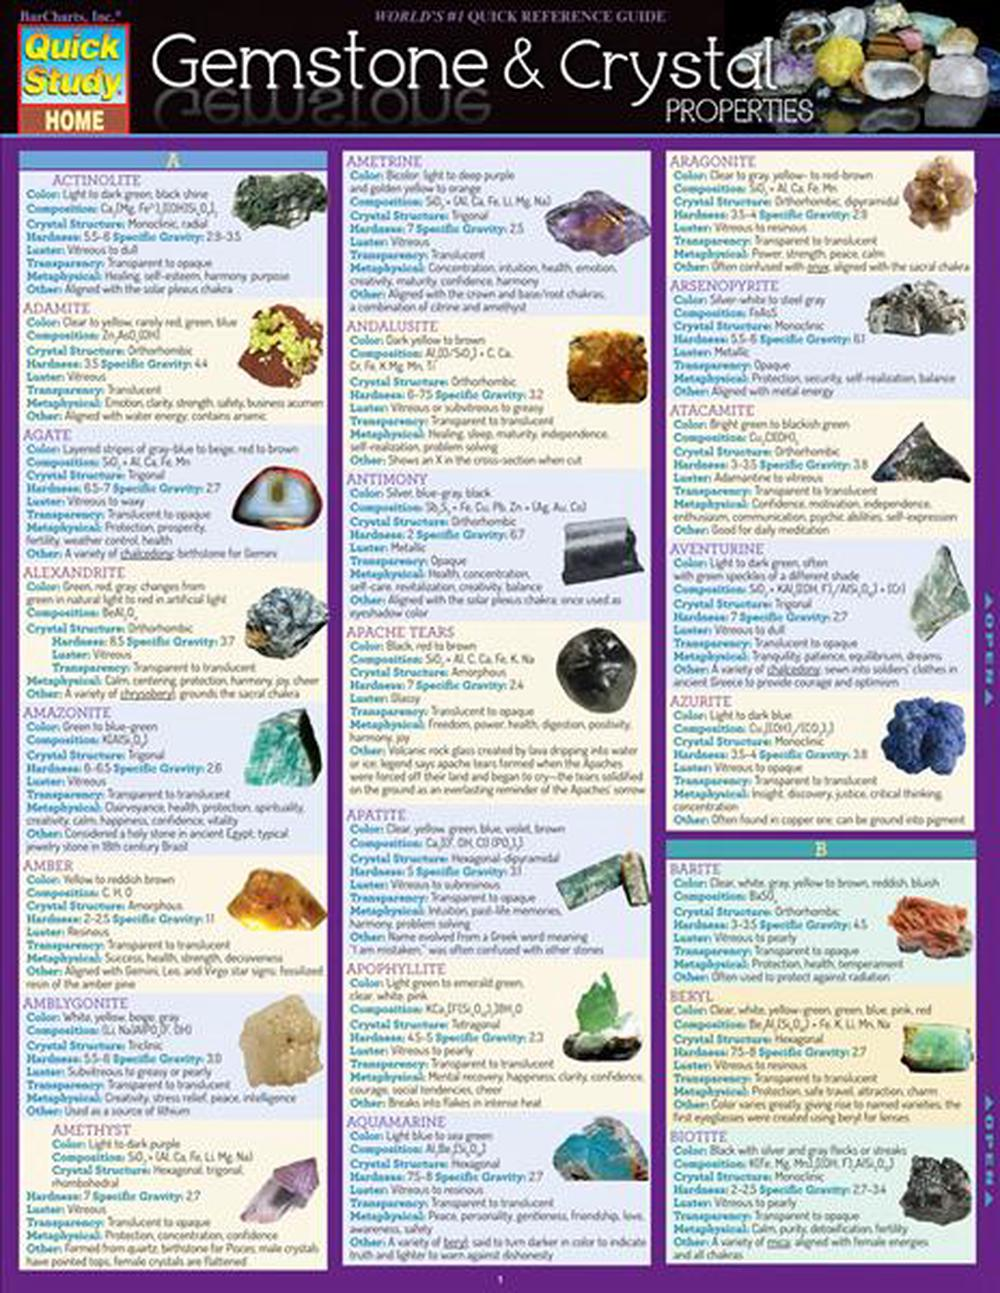 Gemstone & Crystal Properties